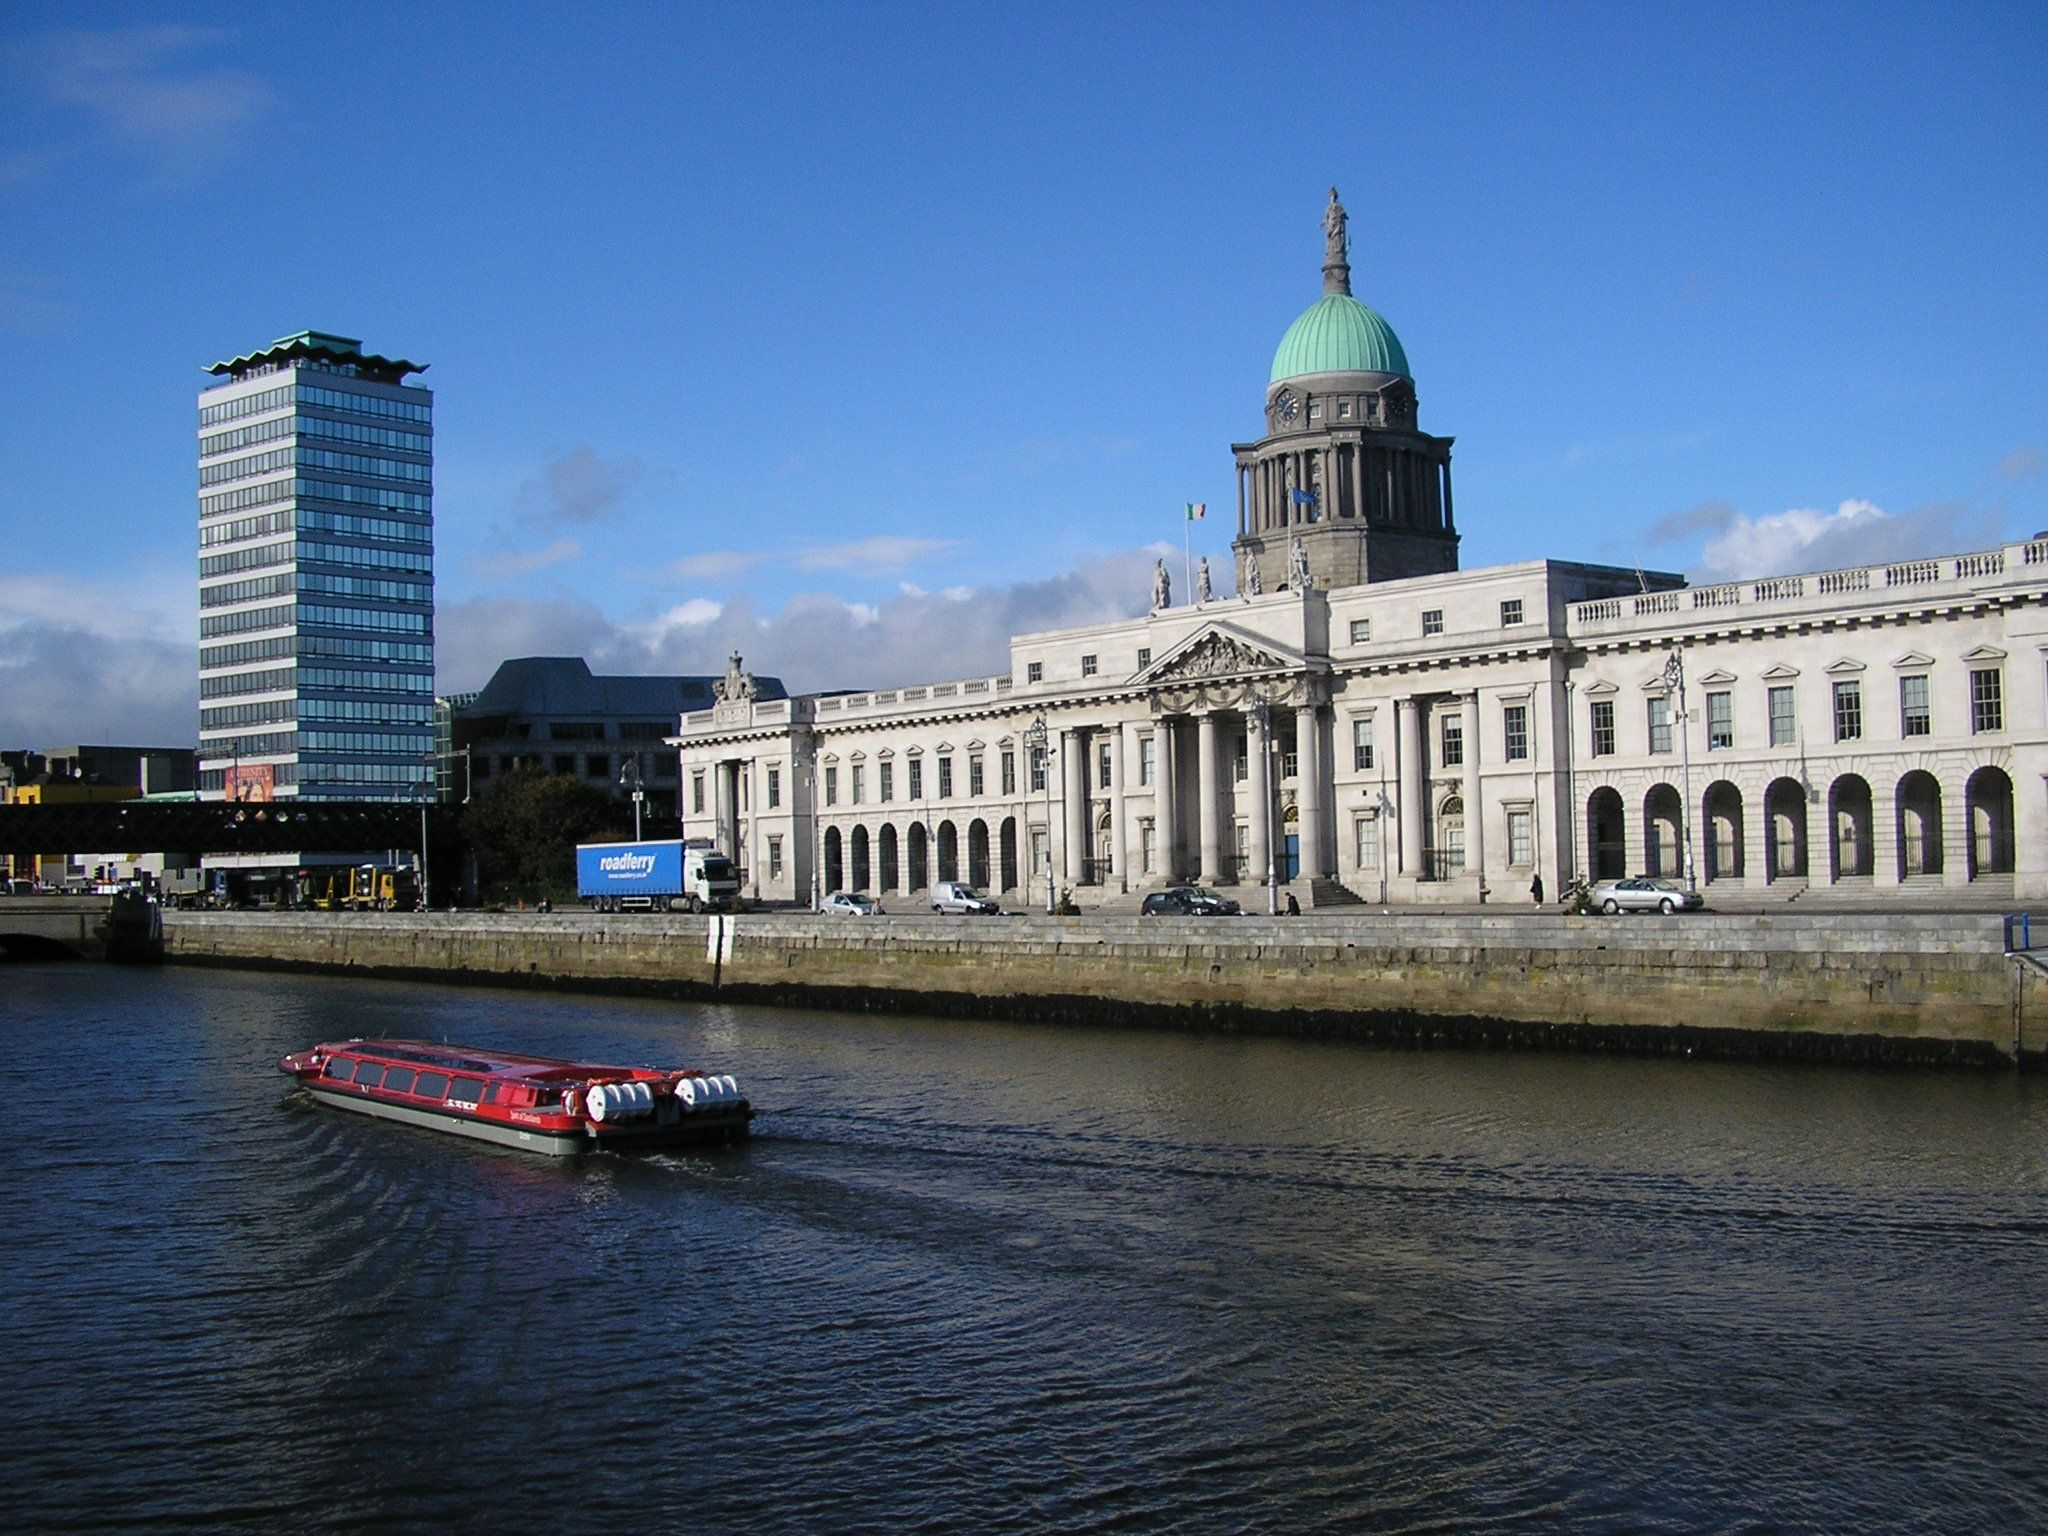 A sightseeing cruise with the Liffey Voyage passing by